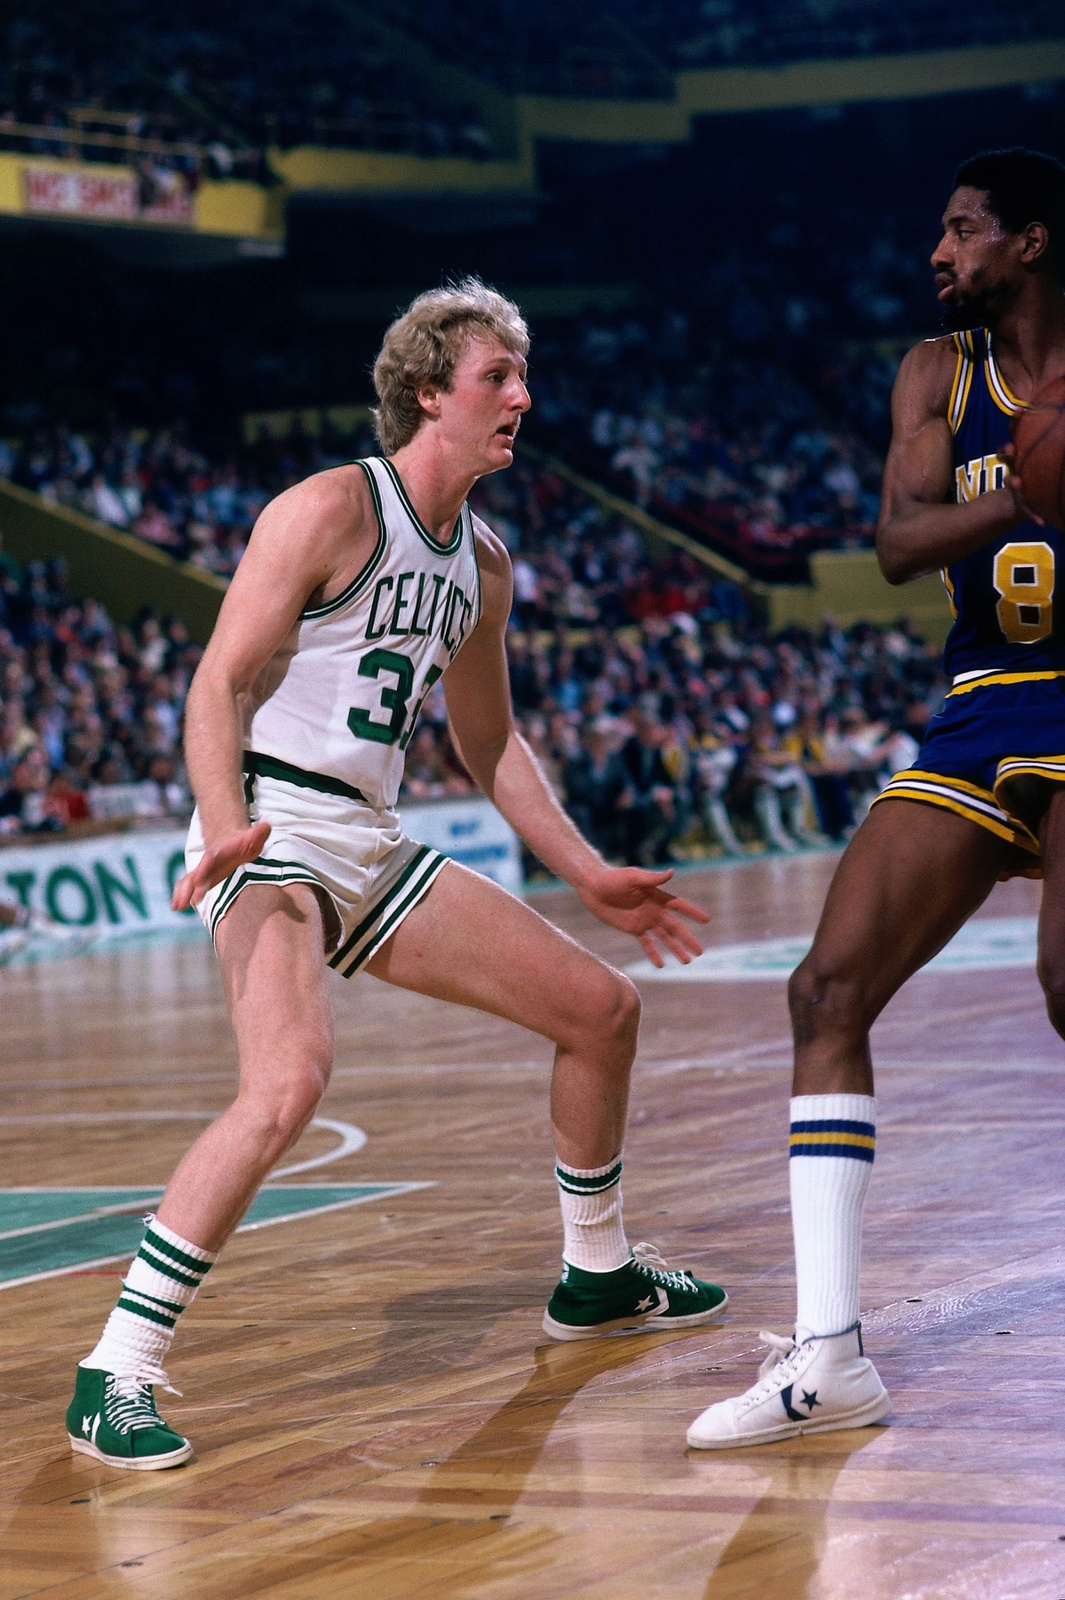 Mickey Johnson #8 of the Indiana Pacers looks to make a move against Larry Bird #33 of the Boston Celtics during a game played in 1980 at the Boston Garden in Boston, Massachusetts.